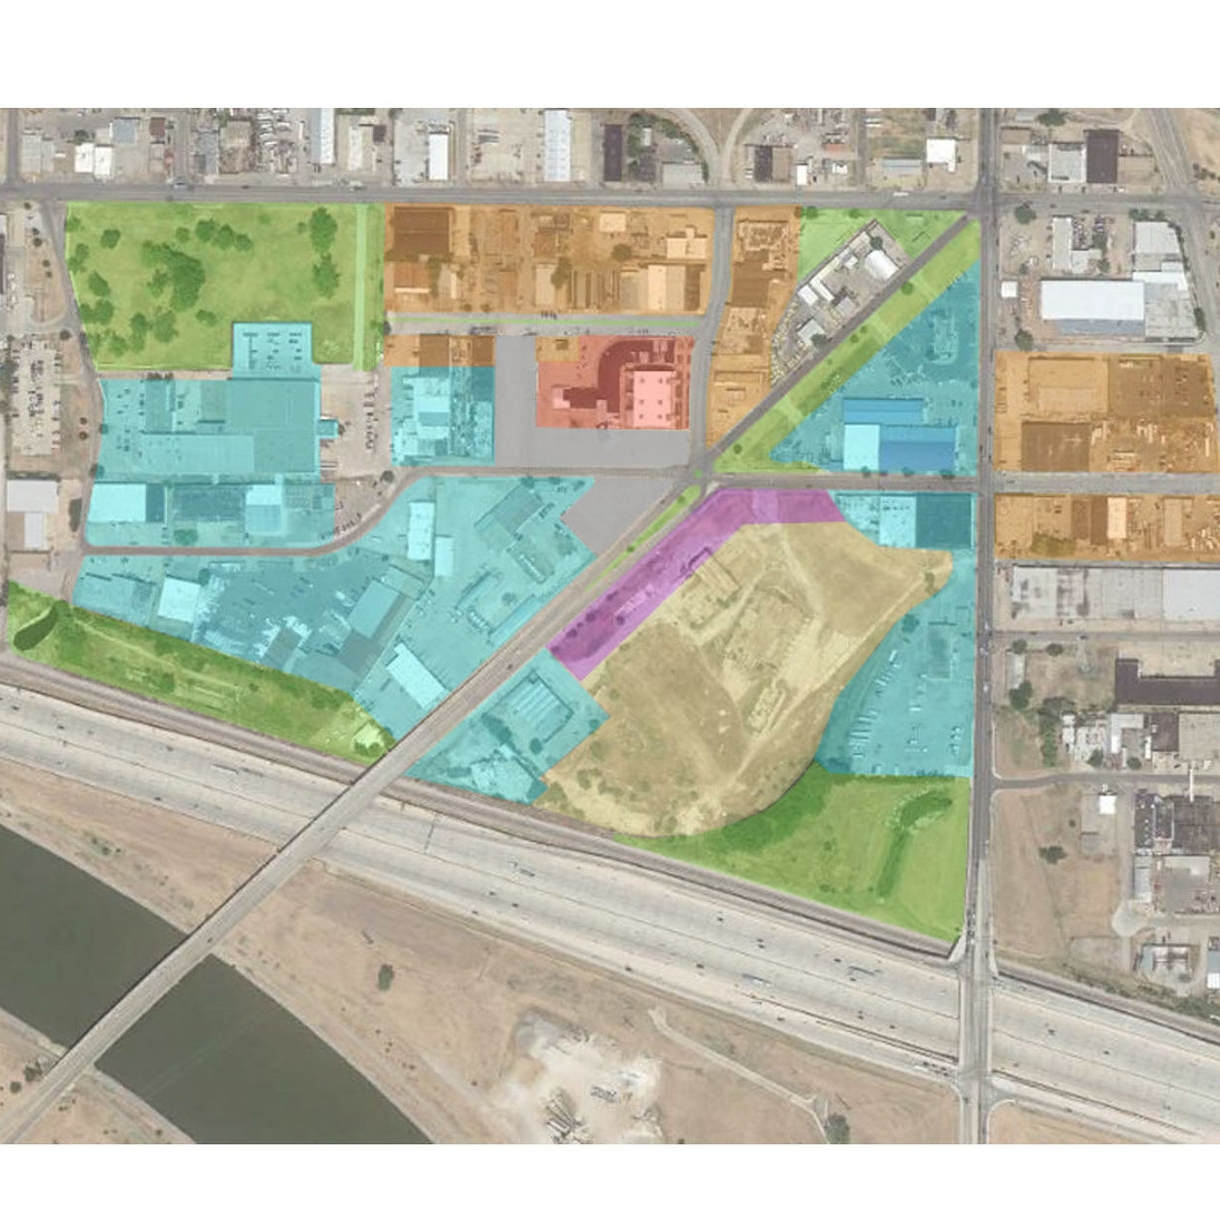 OKCFMD Site Plan Overview.jpg